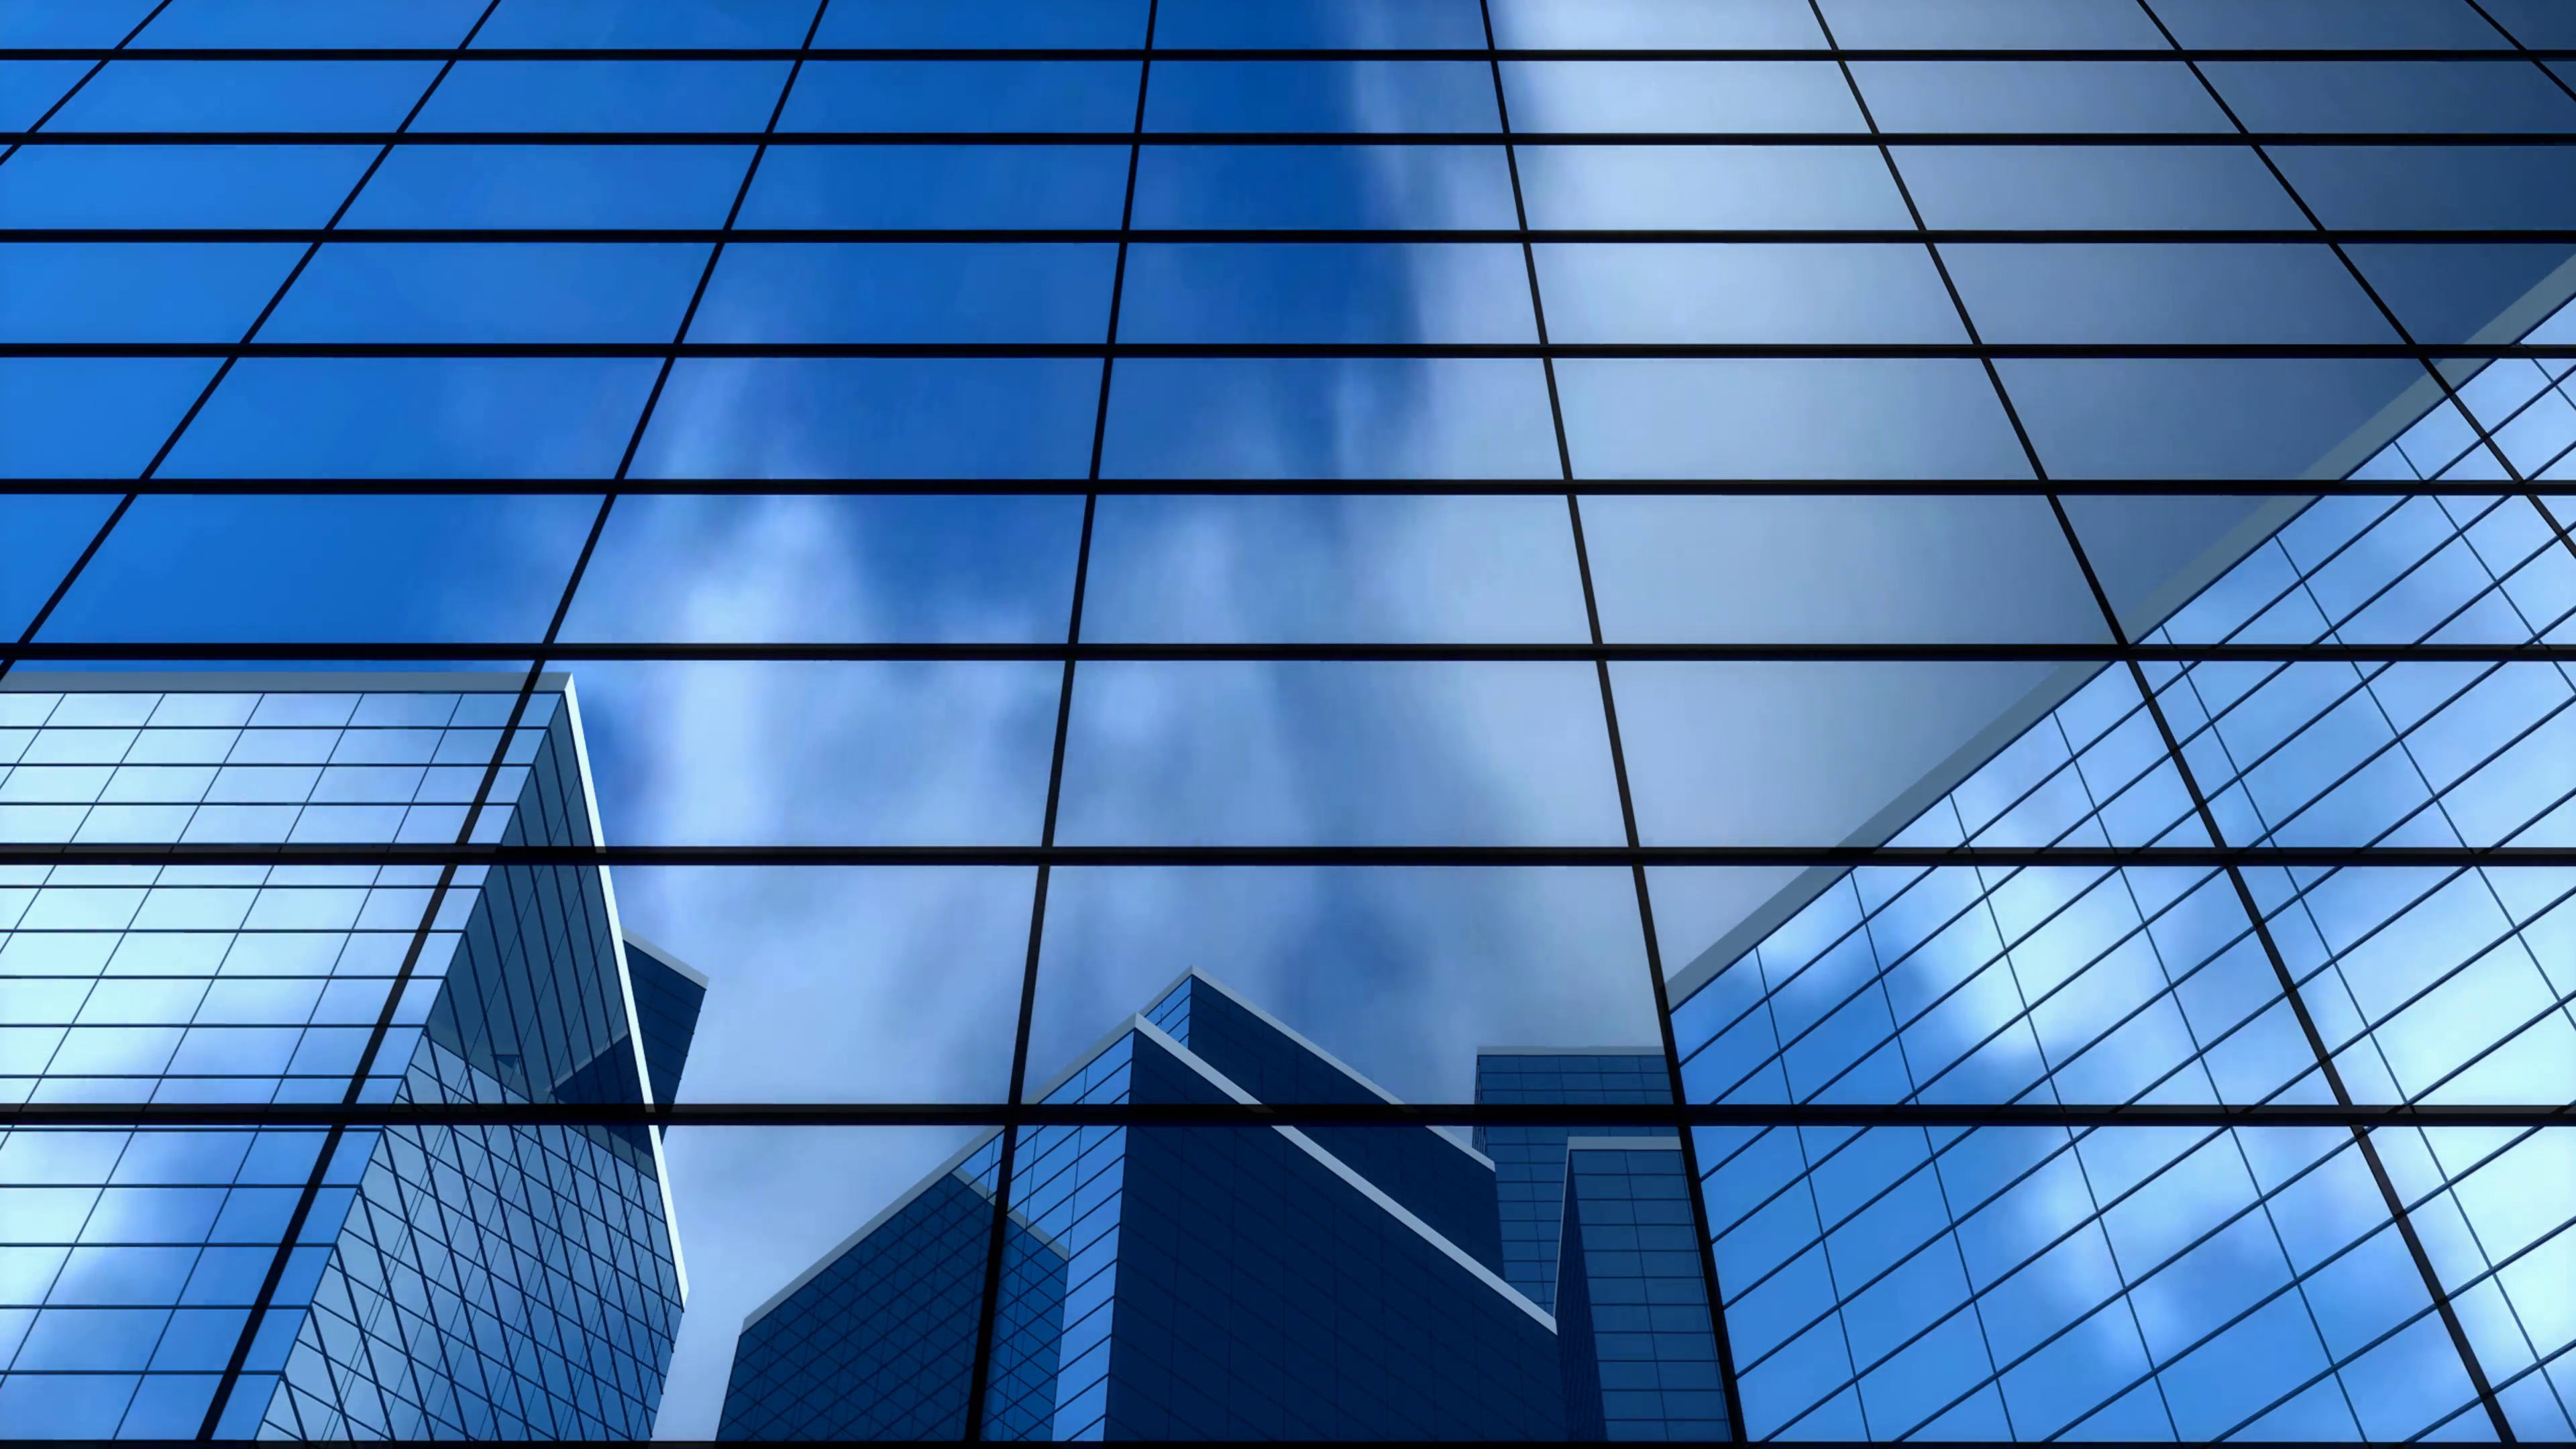 background building office windows glass blue bank 3840x2160